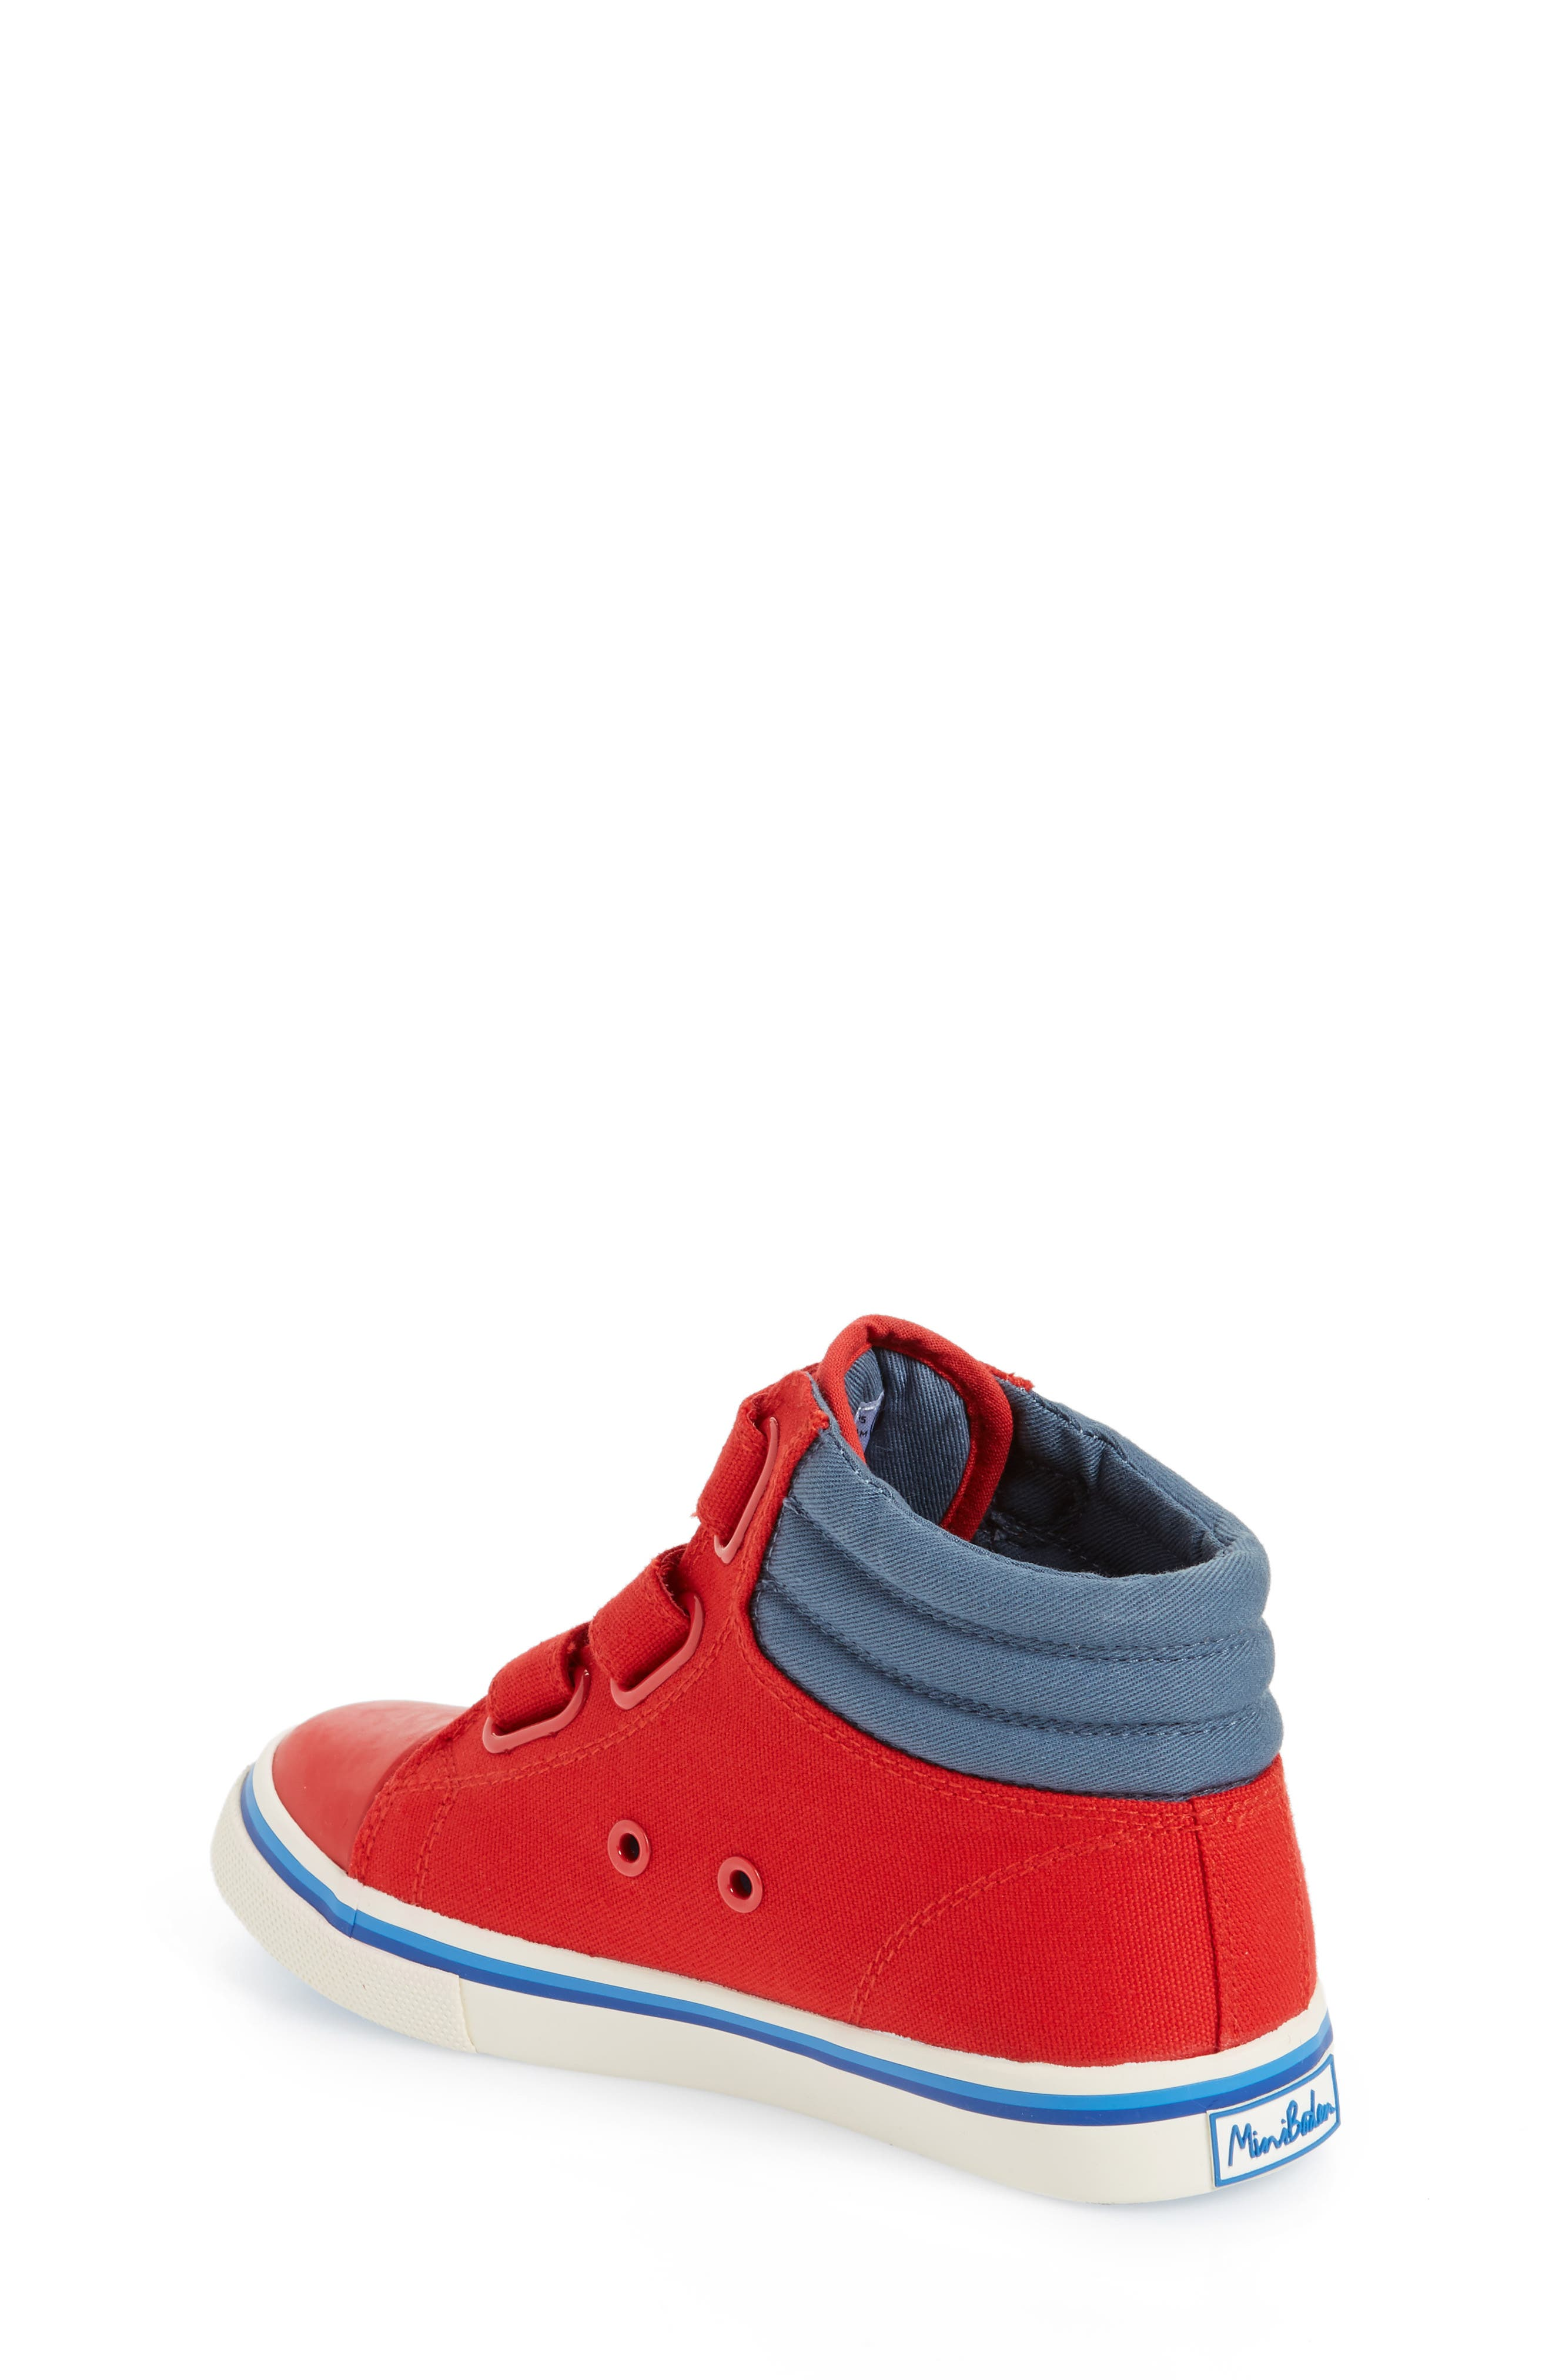 High Top Sneaker,                             Alternate thumbnail 2, color,                             Salsa Red